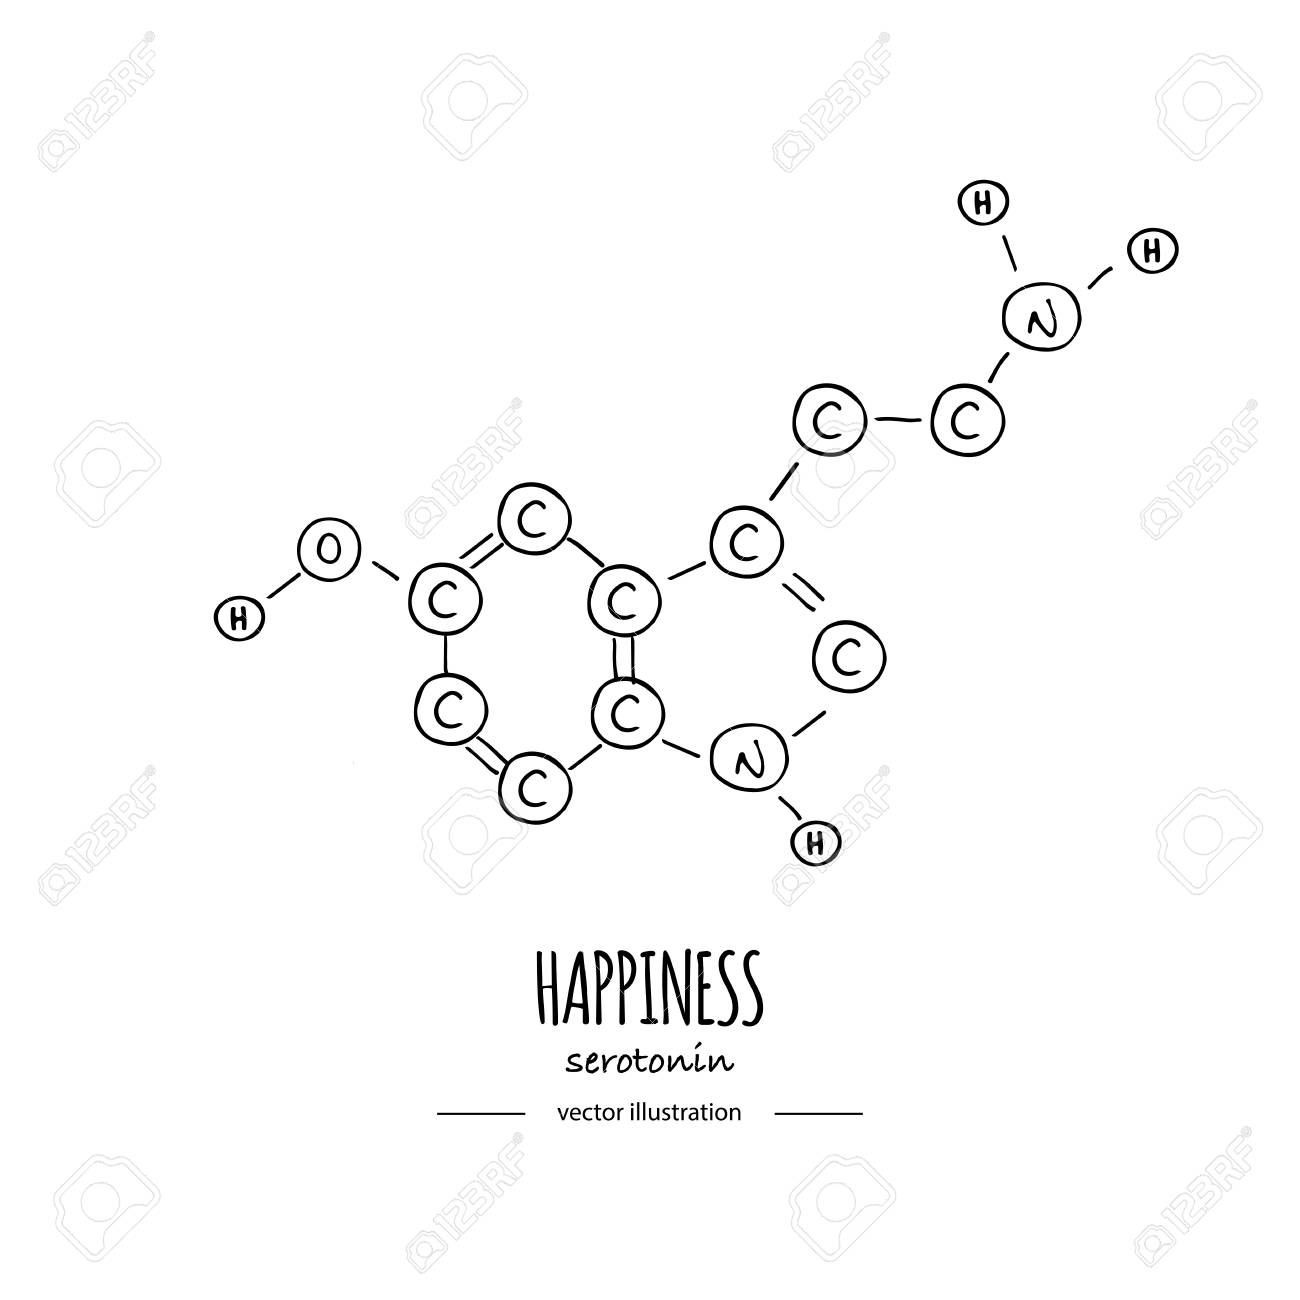 Hand drawn doodle Serotonin chemical formula icon Vector illustration Cartoon molecule Sketch happiness symbol molecular structure Structural scientific hormone formula isolated on white background - 124798764